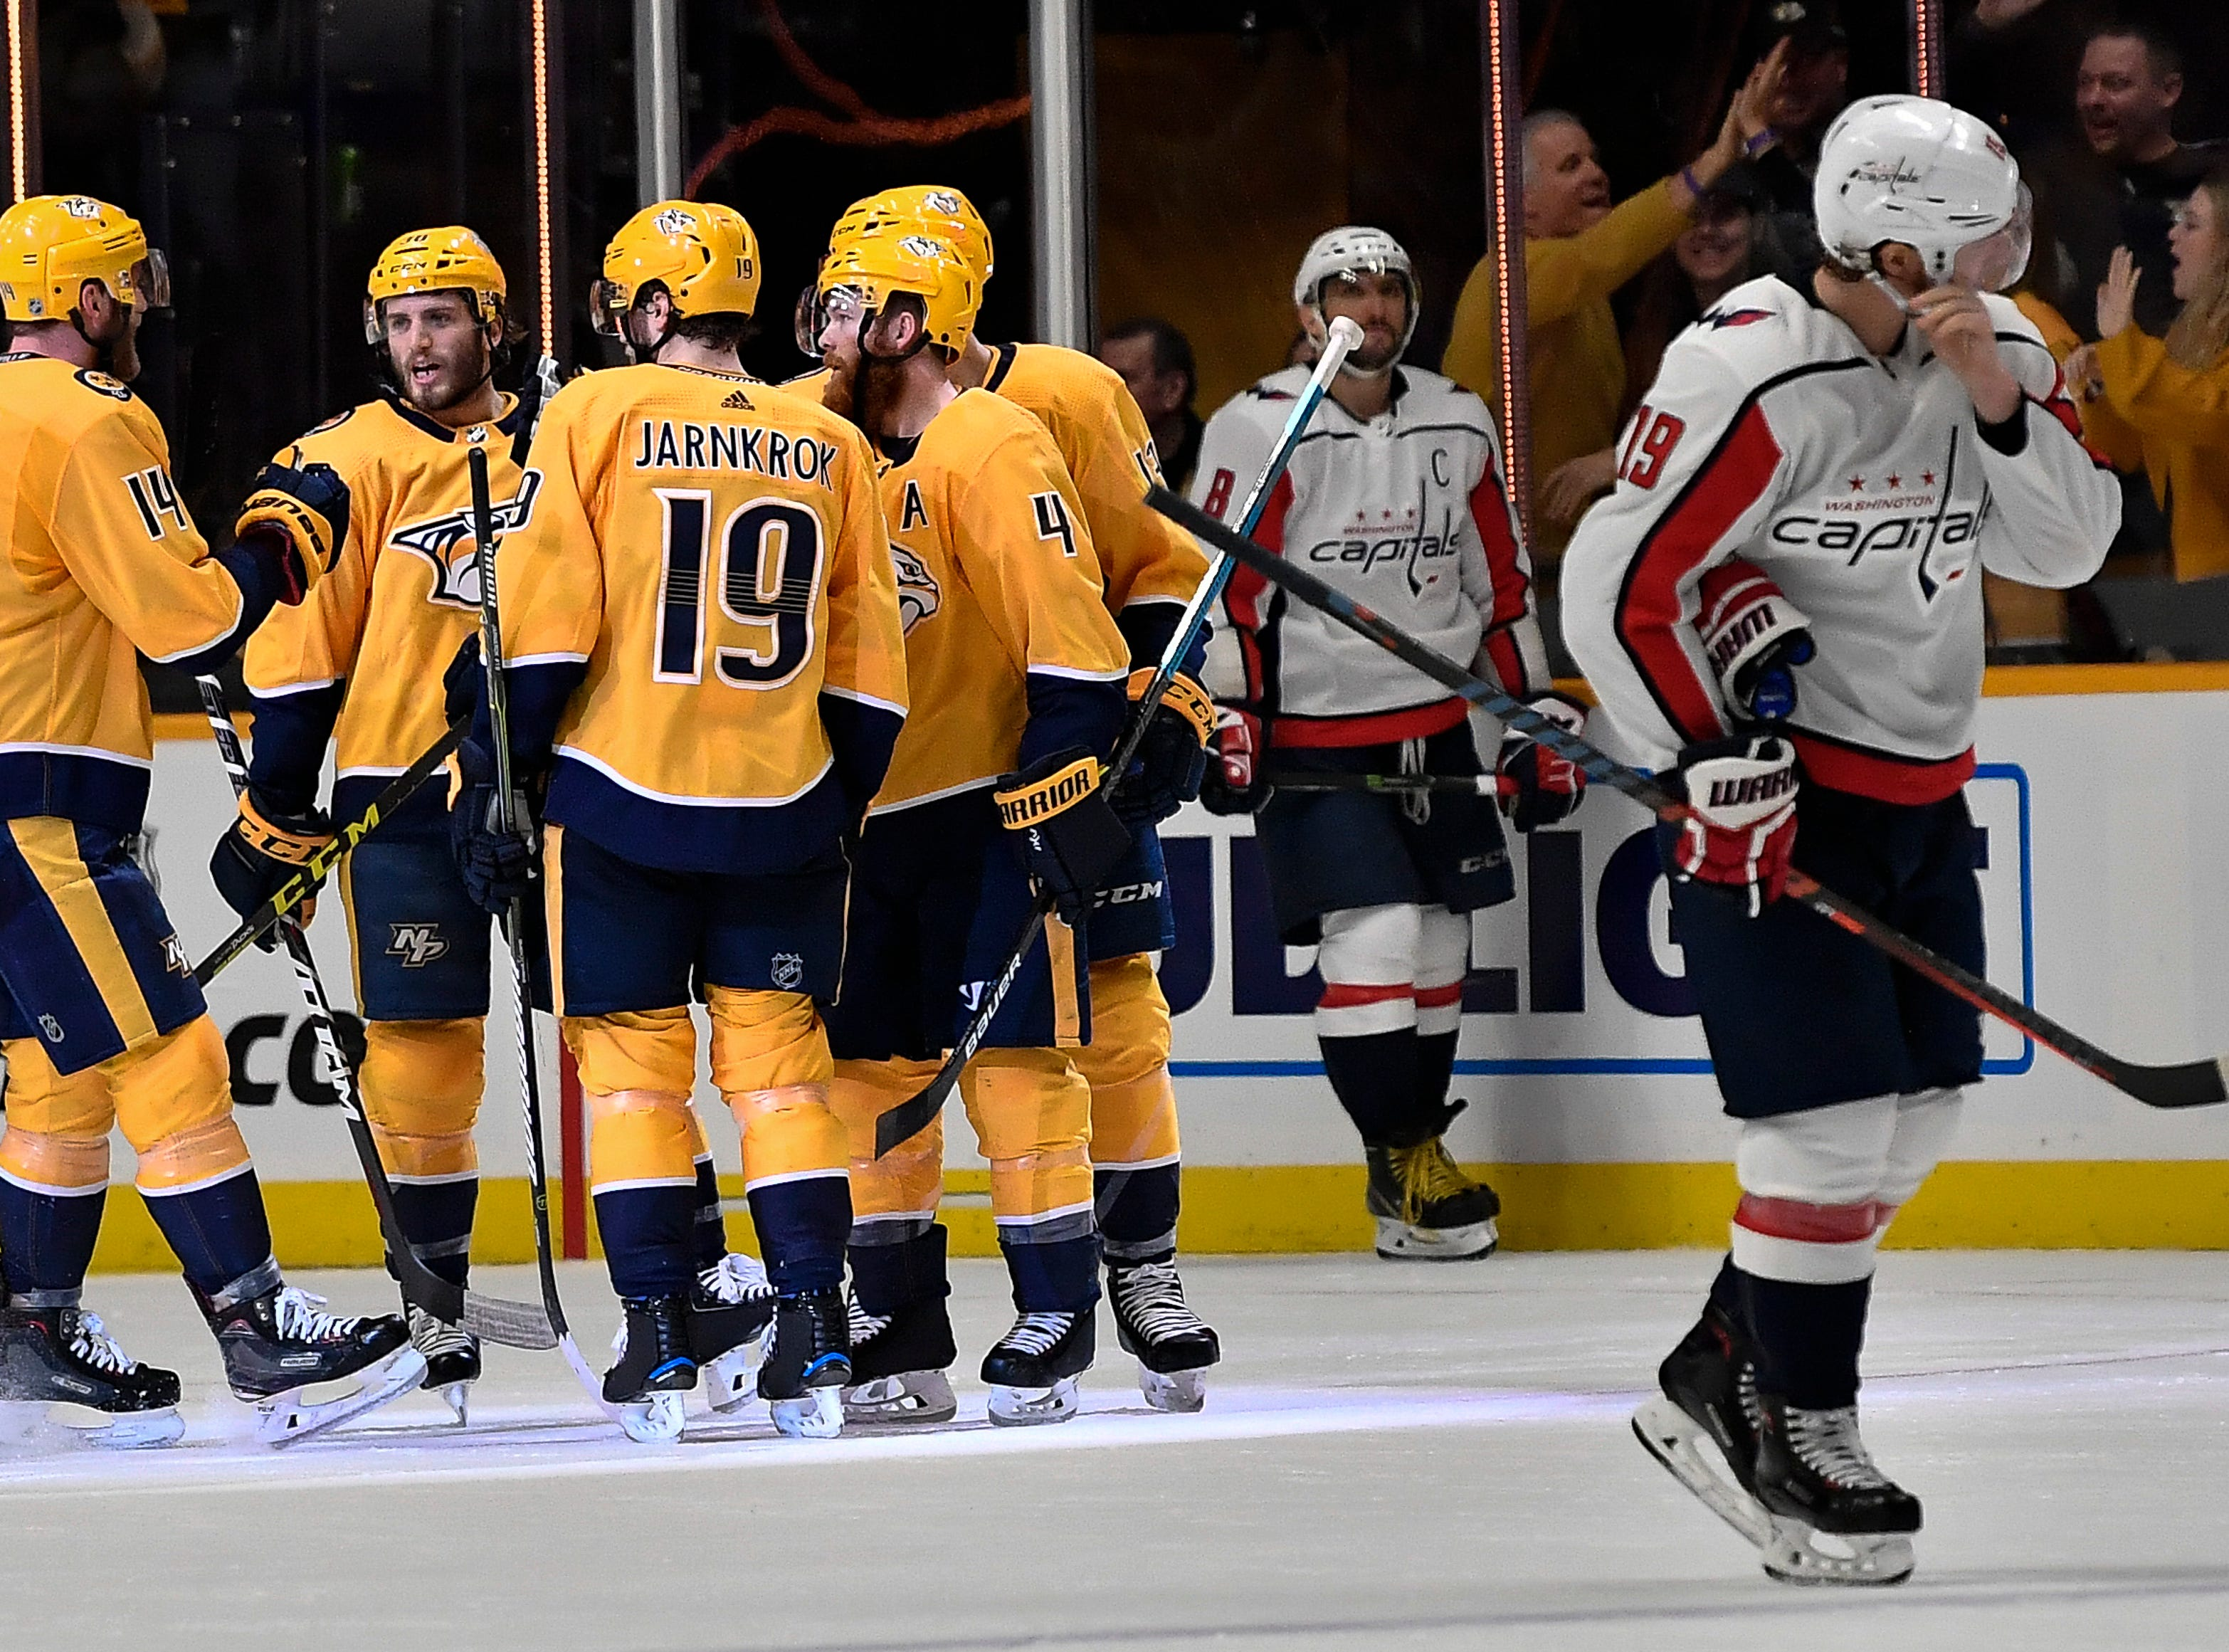 Predators center Nick Bonino (13) is congratulated by teammates after his goal against the Capitals during the second period at Bridgestone Arena Tuesday, Jan. 15, 2019, in Nashville, Tenn.